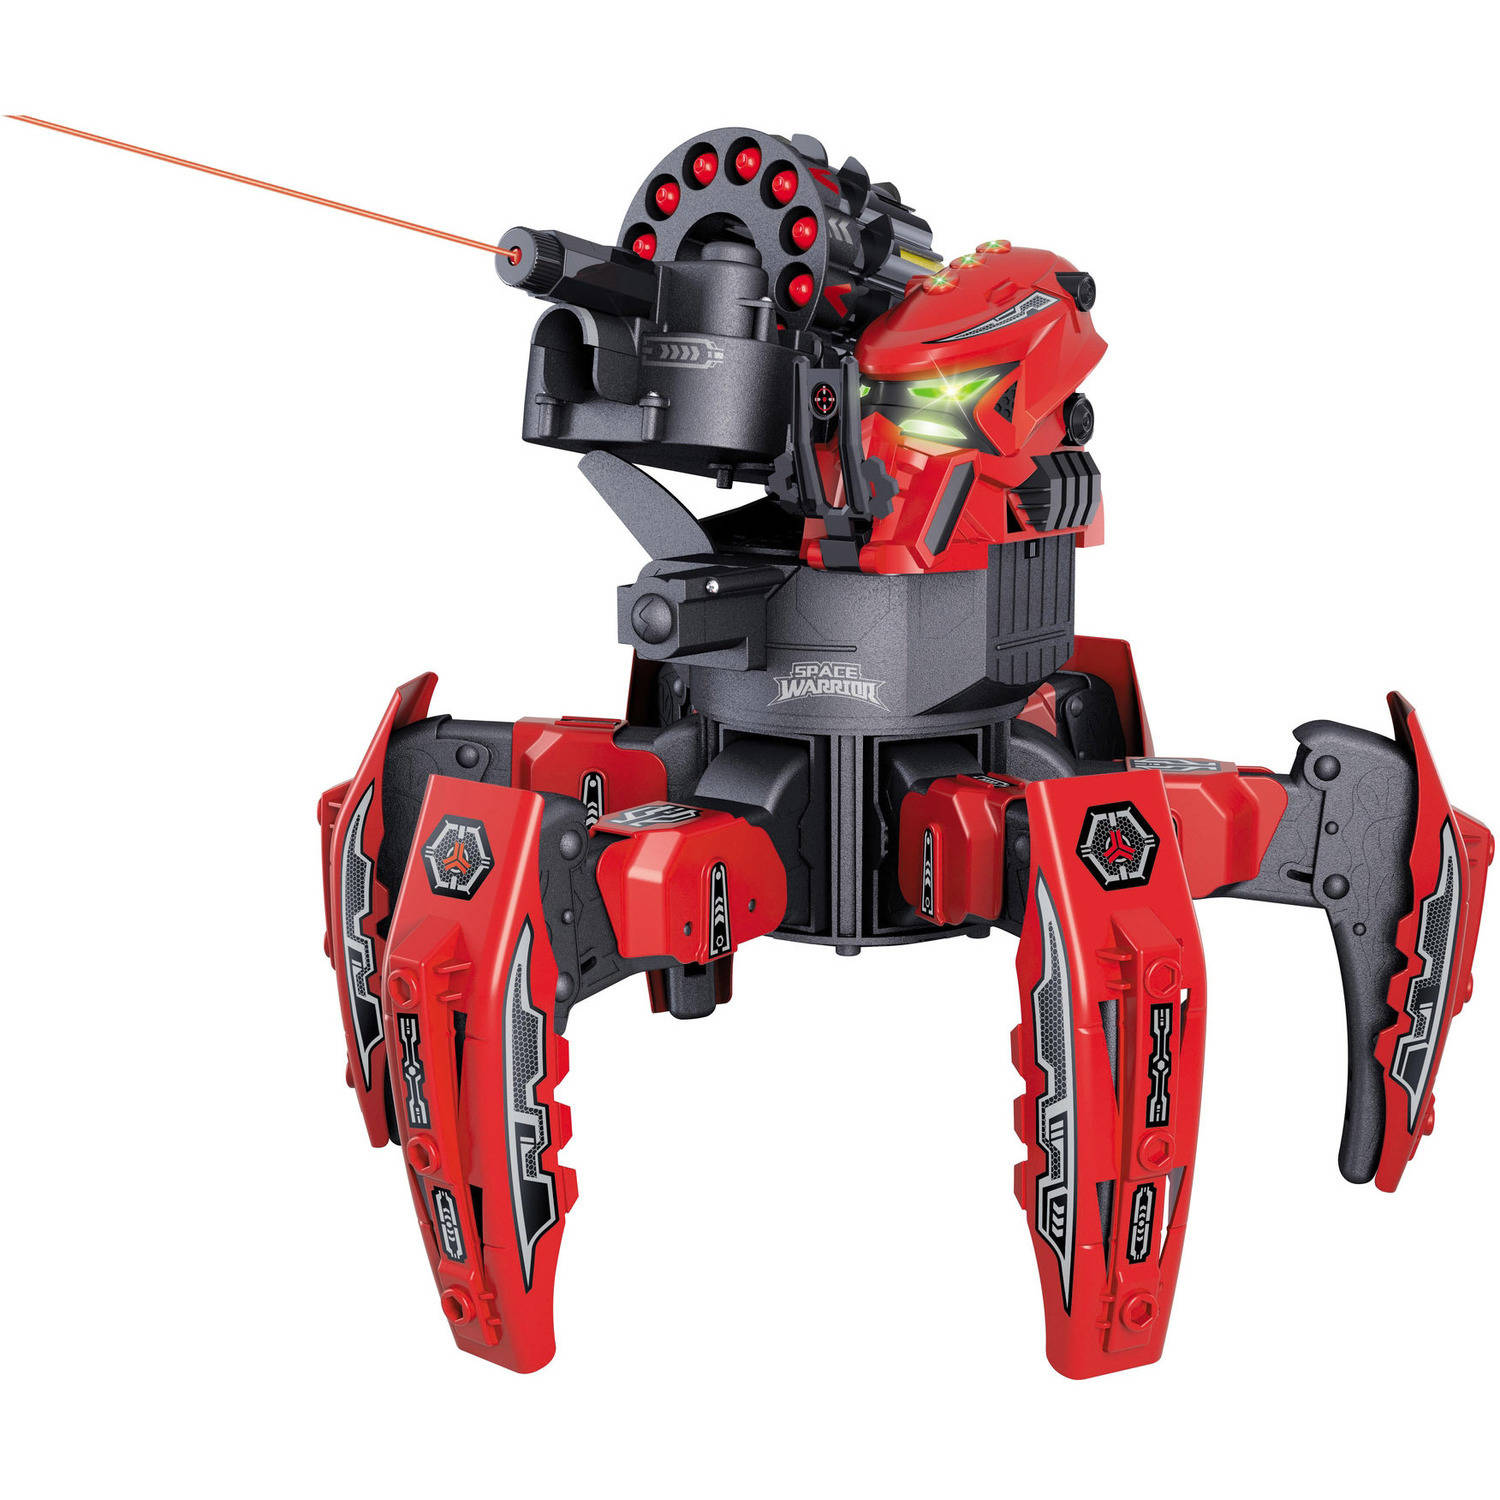 Riviera RC Space Warrior battle Robot with Remote Control, RED by Creative Sourcing International